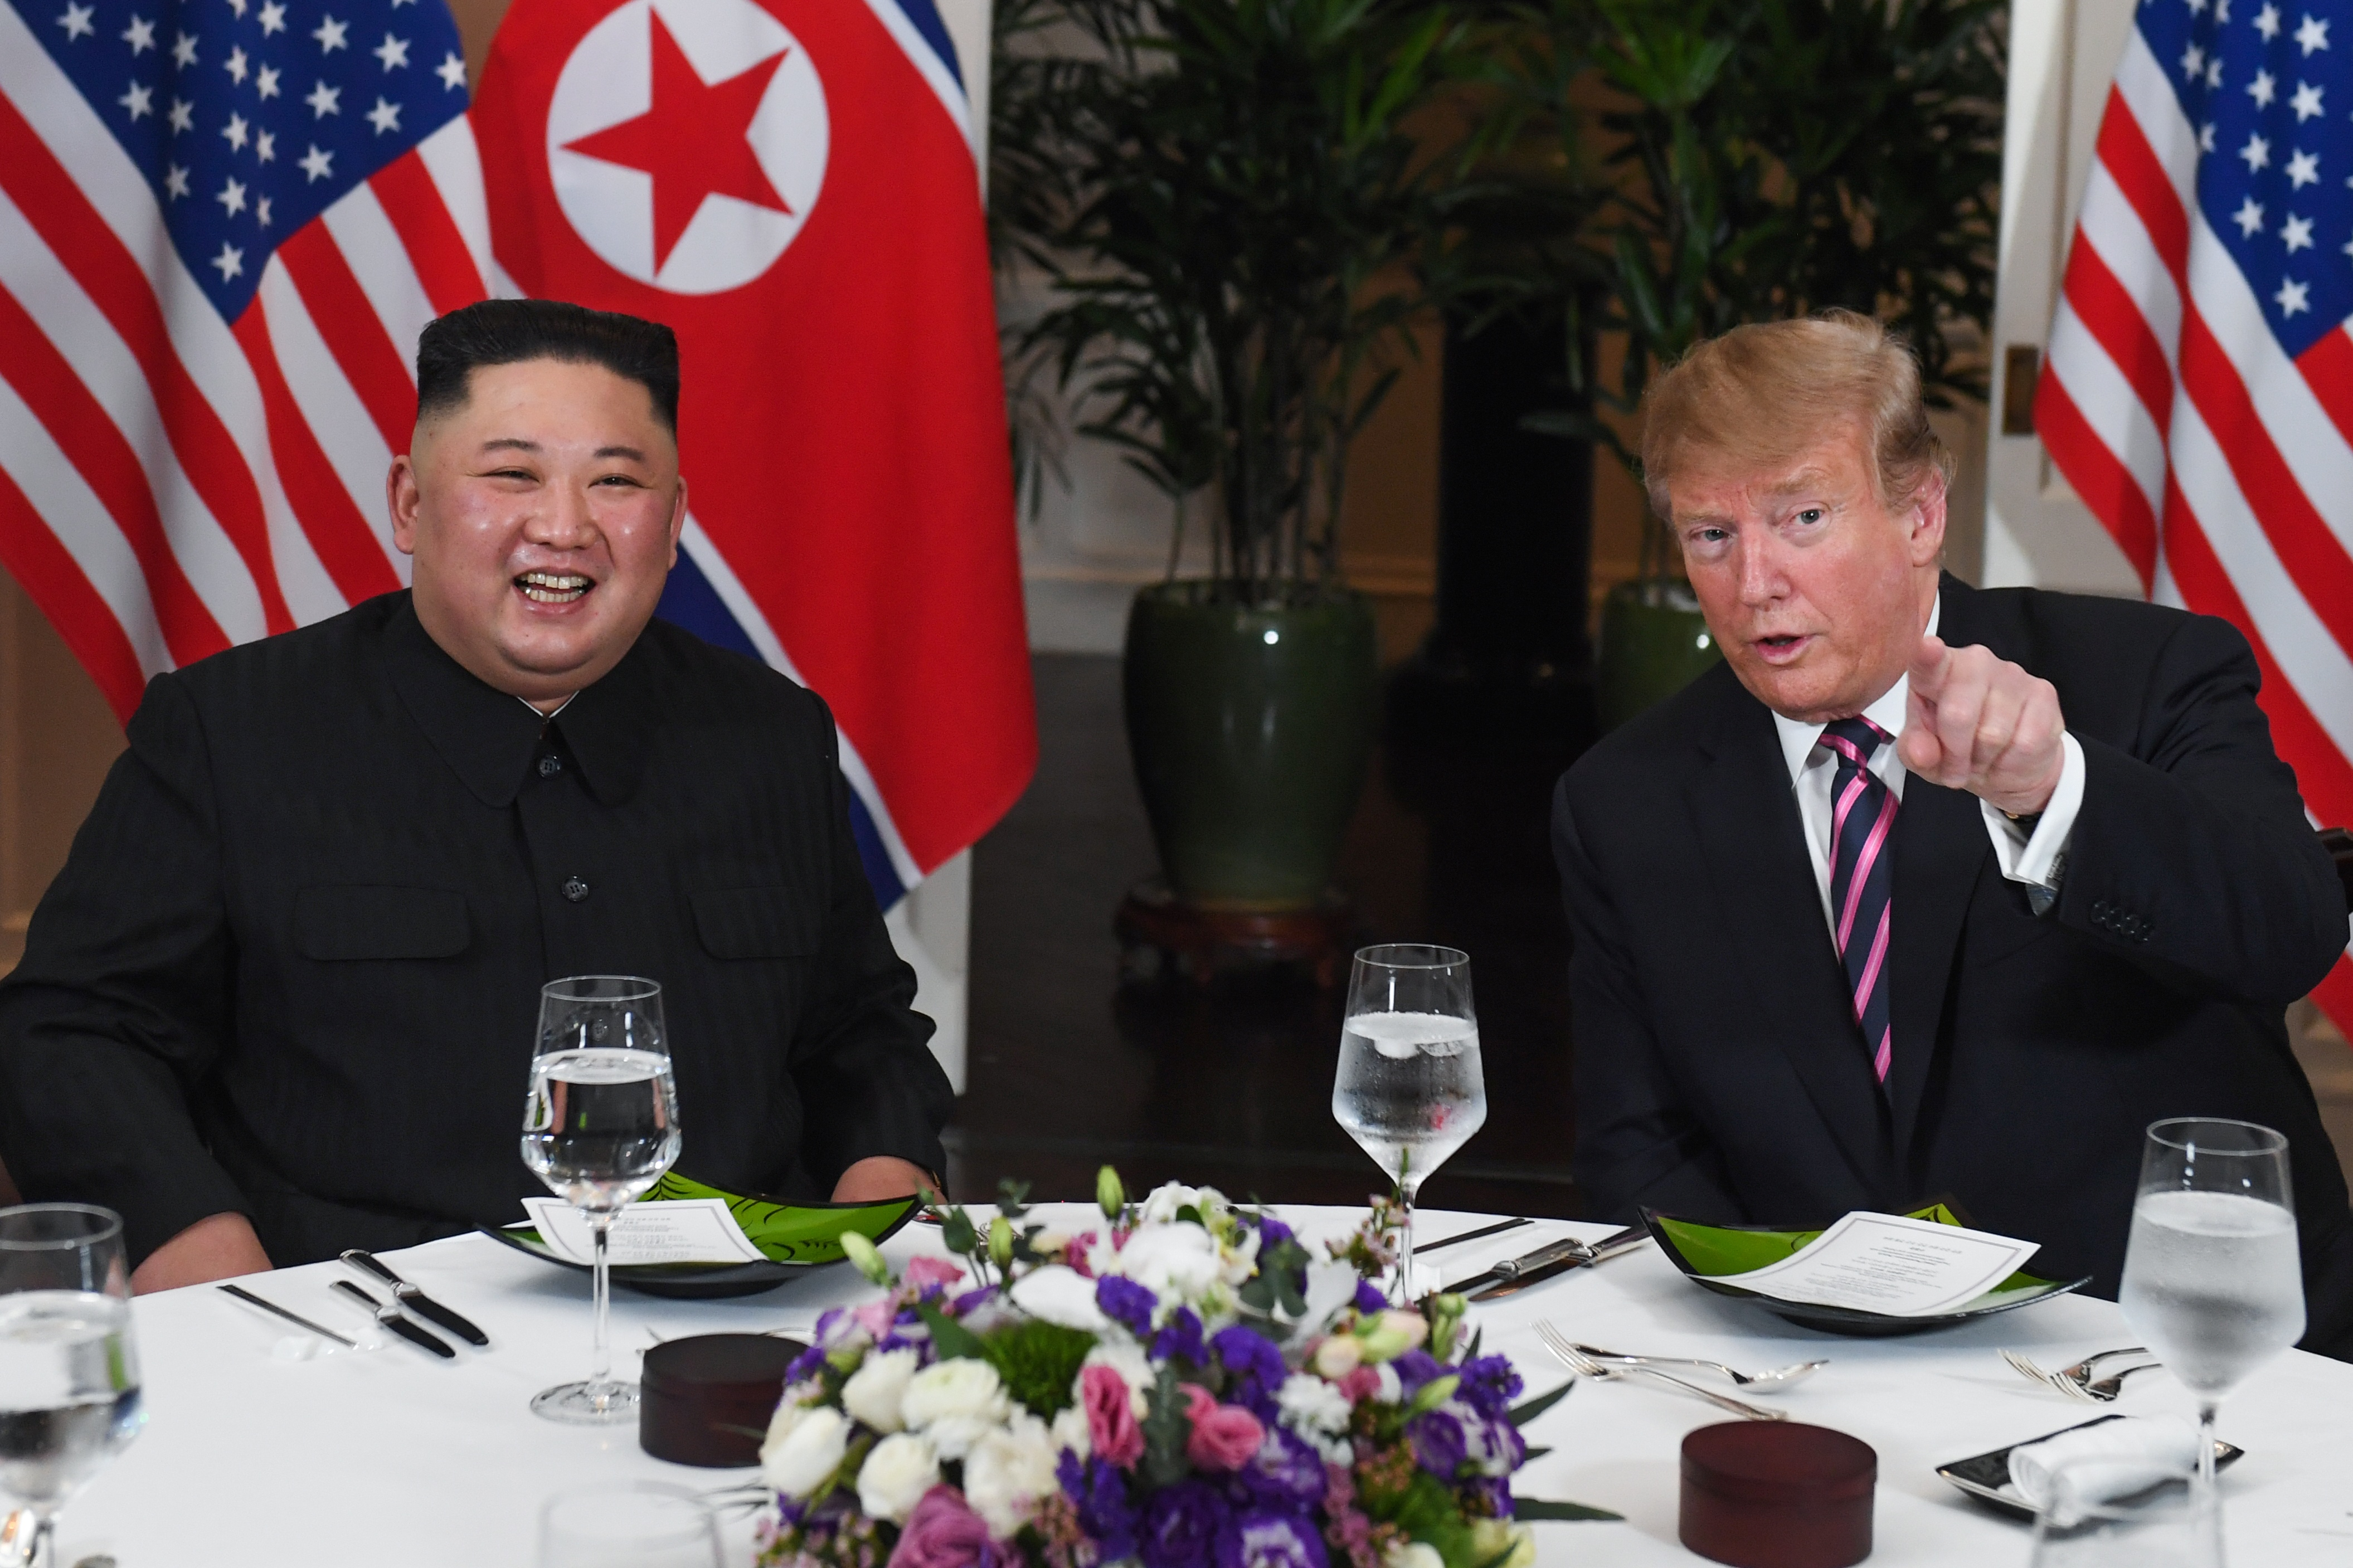 President Donald Trump and North Korea's leader Kim Jong Un sit for a dinner at the Sofitel Legend Metropole hotel in Hanoi, Vietnam on Feb. 27, 2019.